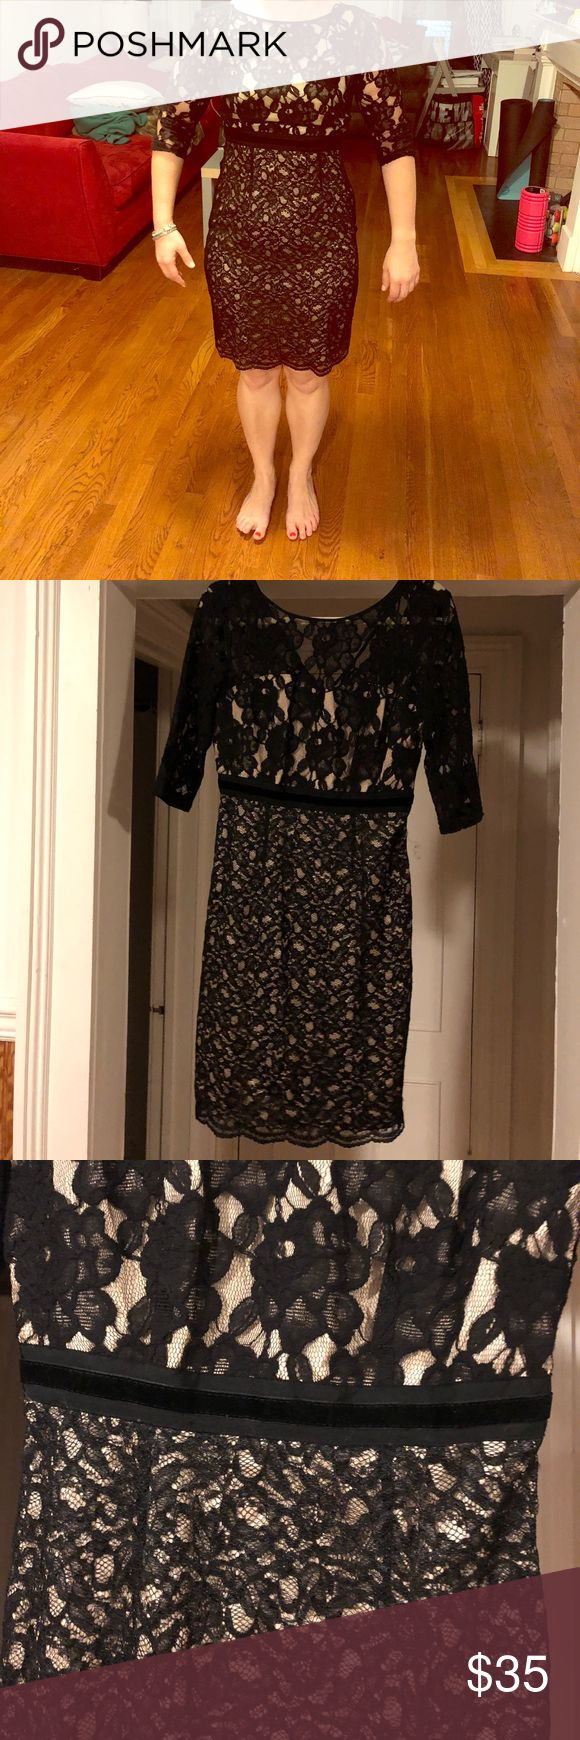 Jax black lace dress size 6 evening cocktail 3/4 sleeve black lace Jax dress! Great condition! Perfect for evening out, wedding or any holiday party occasion  True to Size 6  Little black dress, lace, evening dress, cocktail dress,black tie optional, sheath dress Jax Dresses Long Sleeve